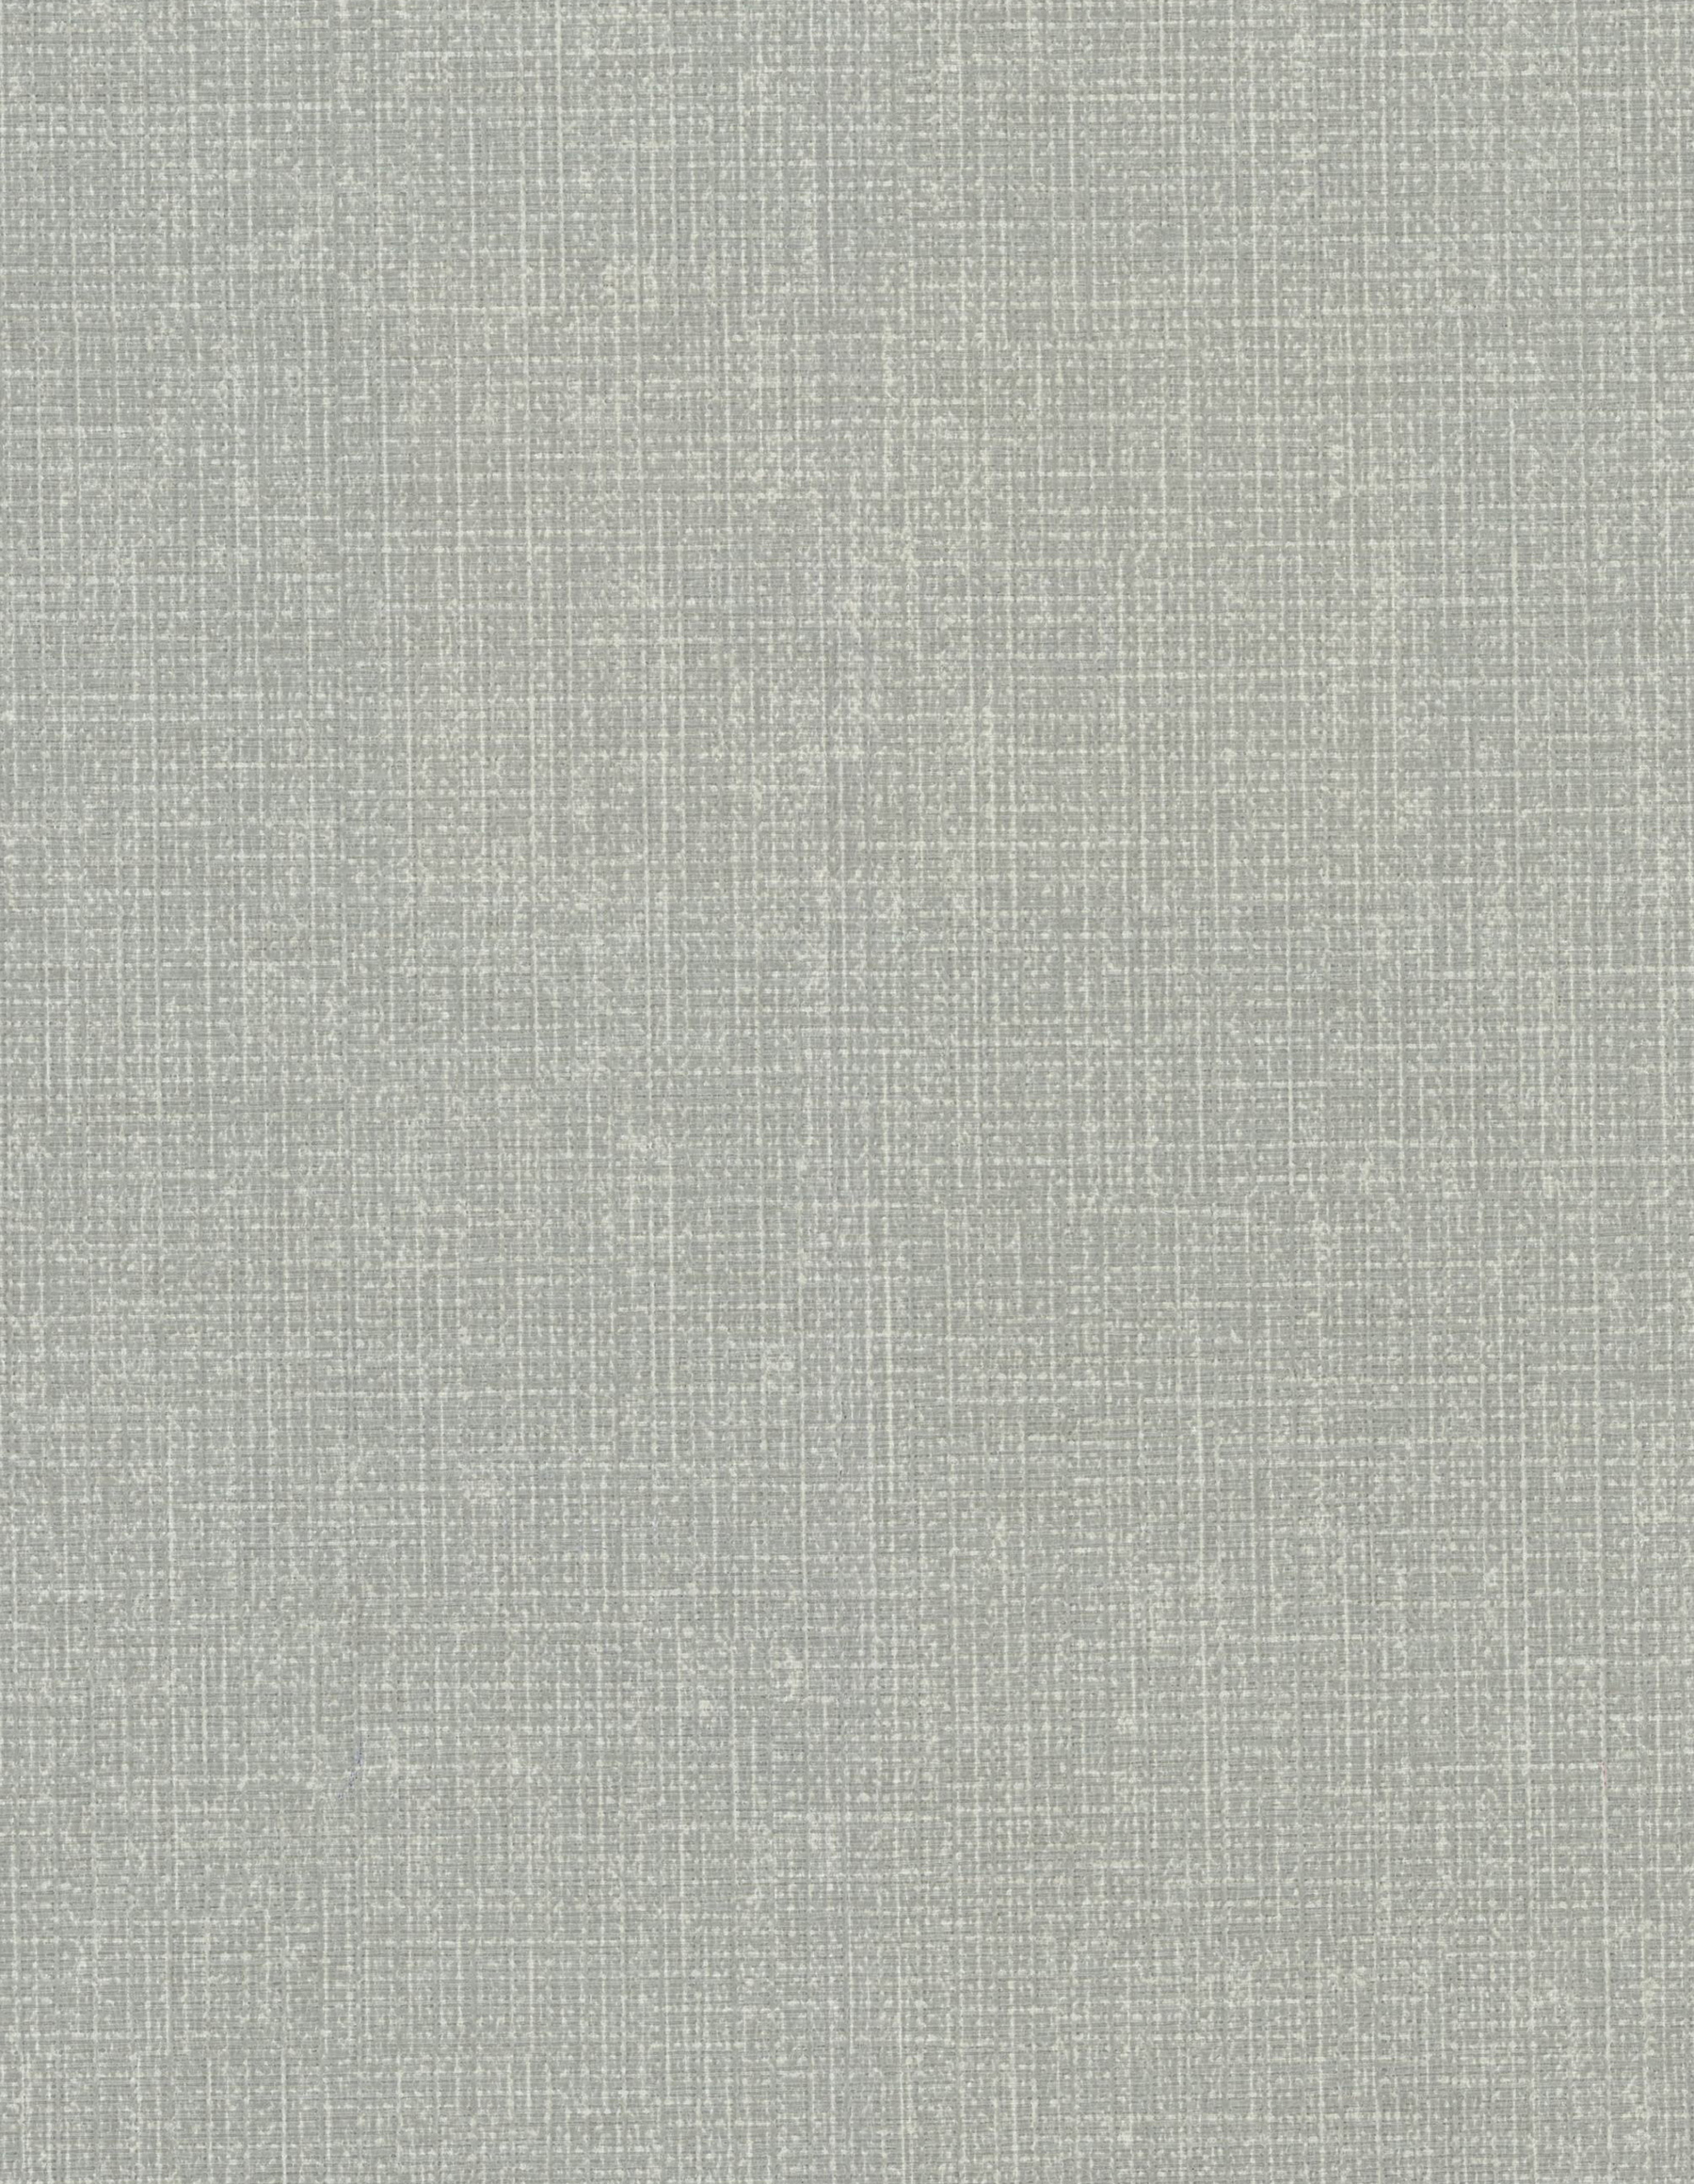 Picture of Arya Sage Fabric Texture Wallpaper